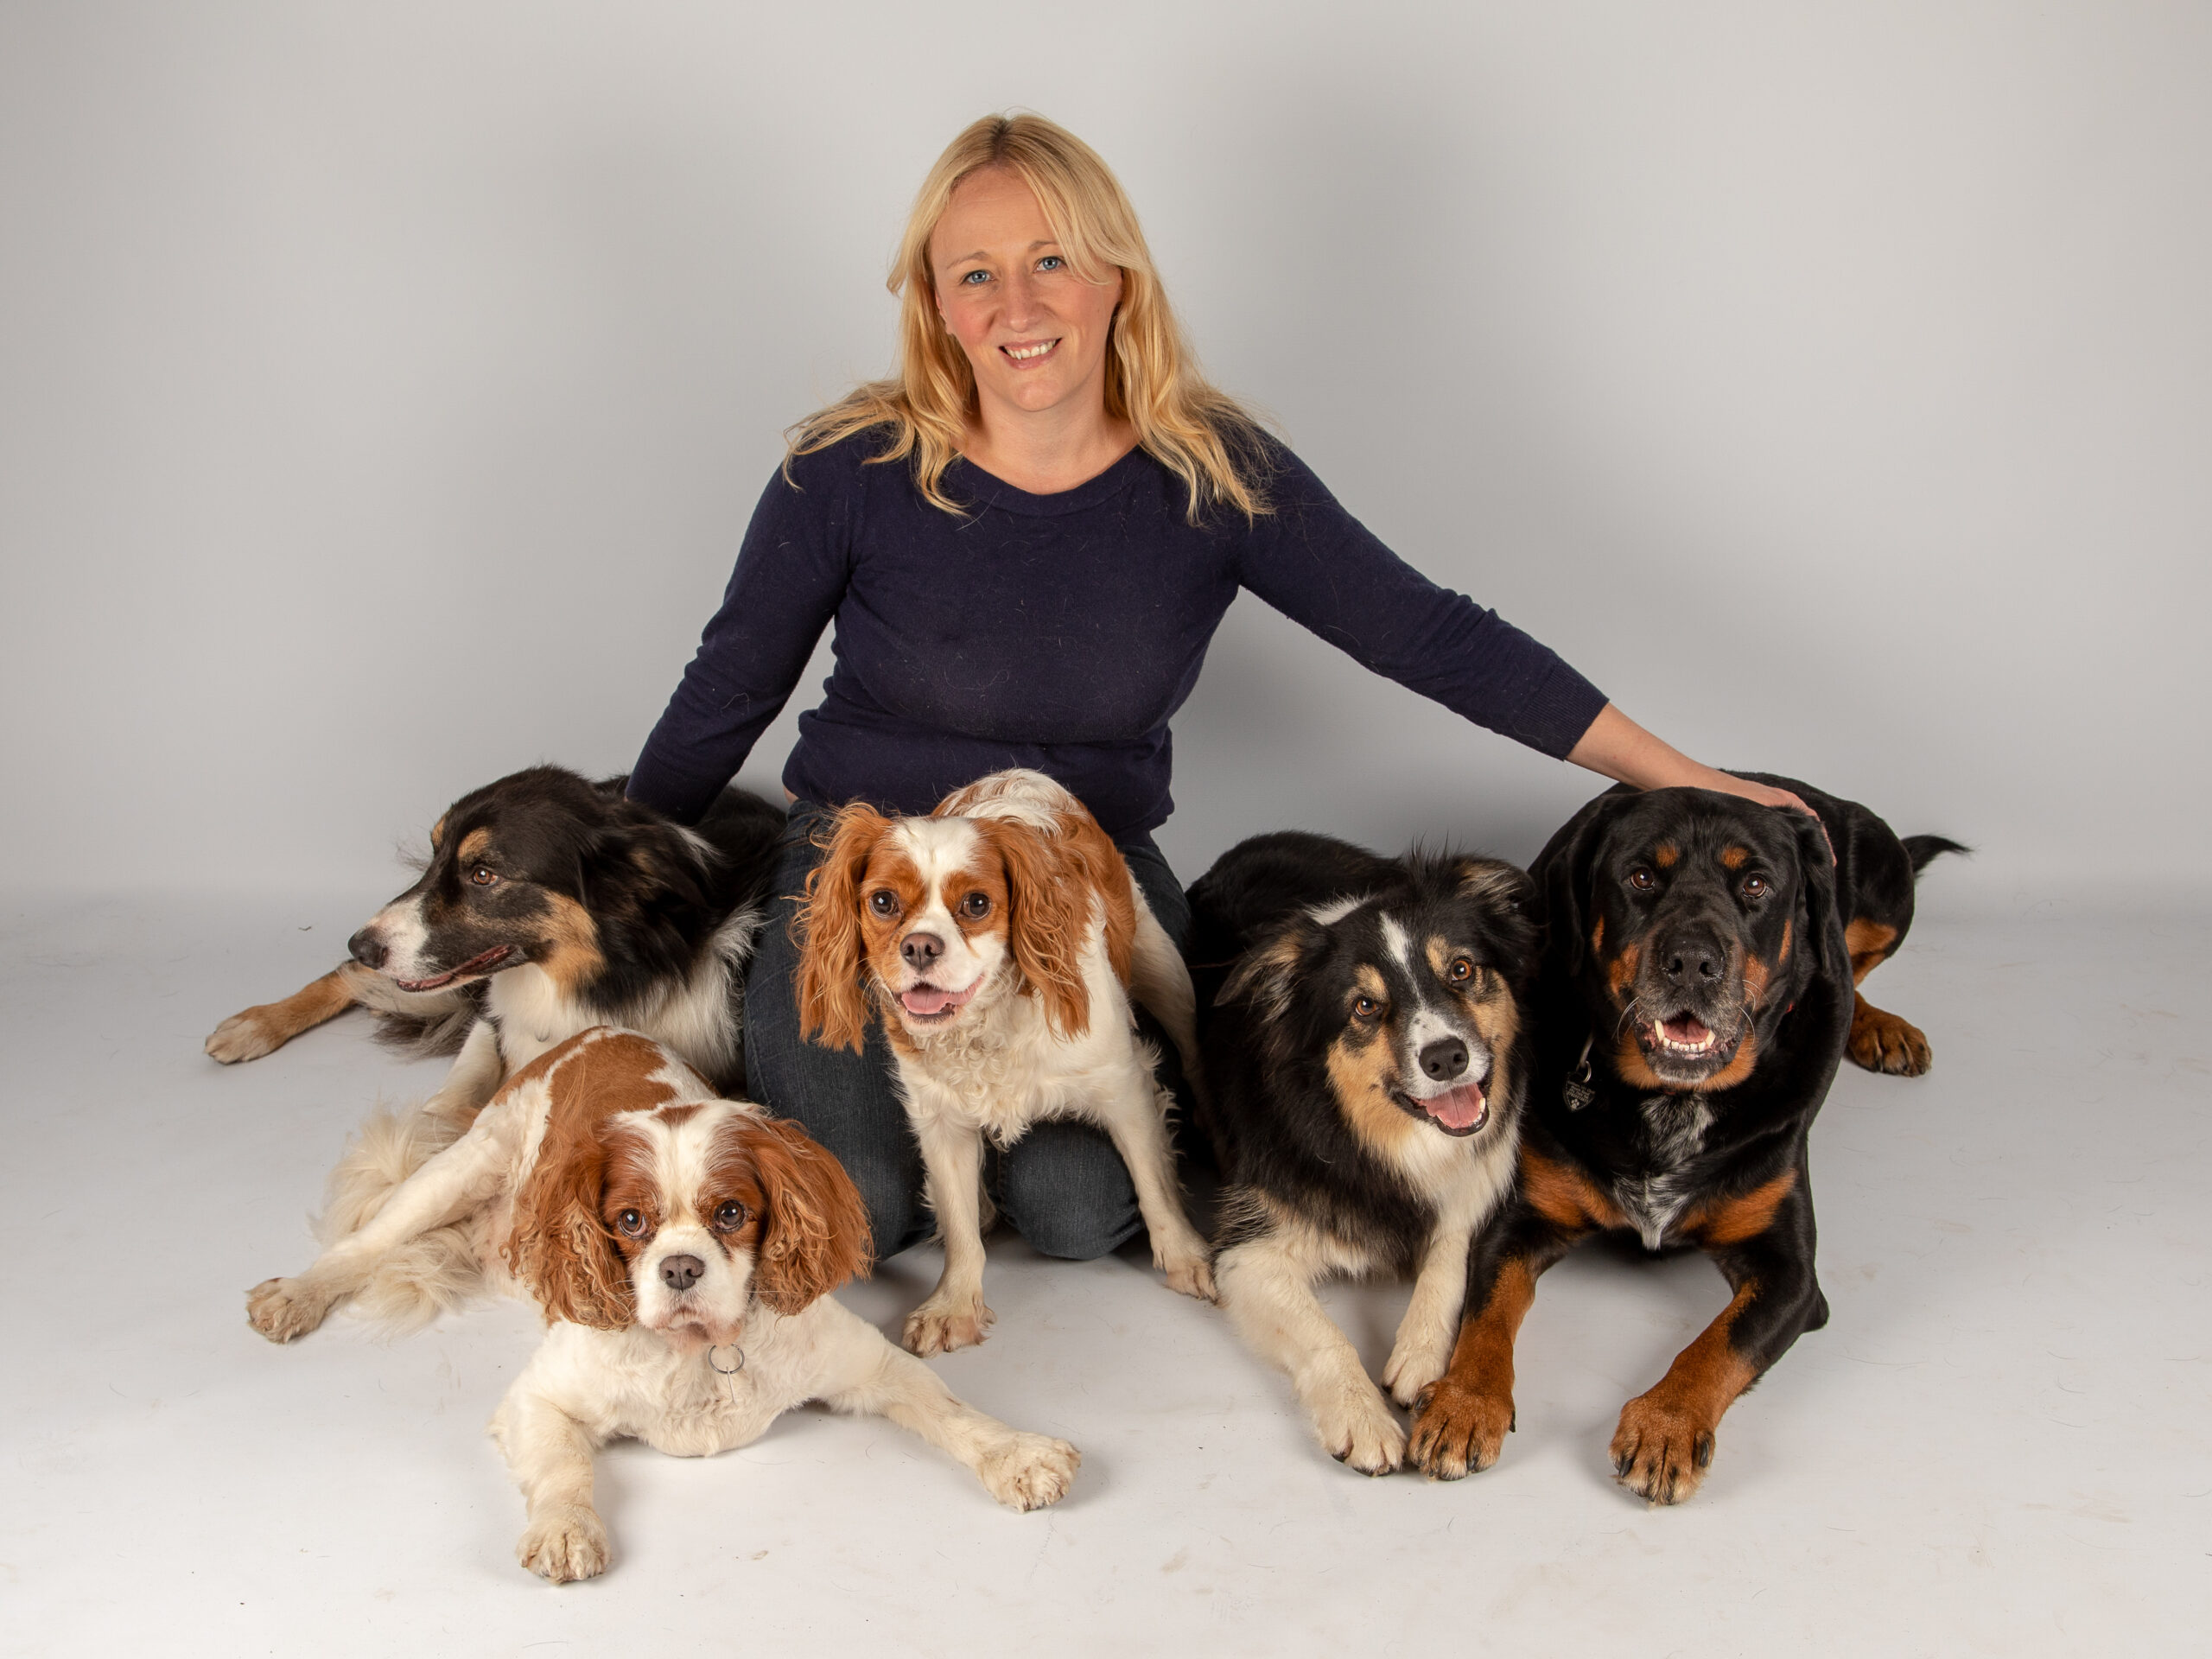 Friends and Canines - Meet The Team